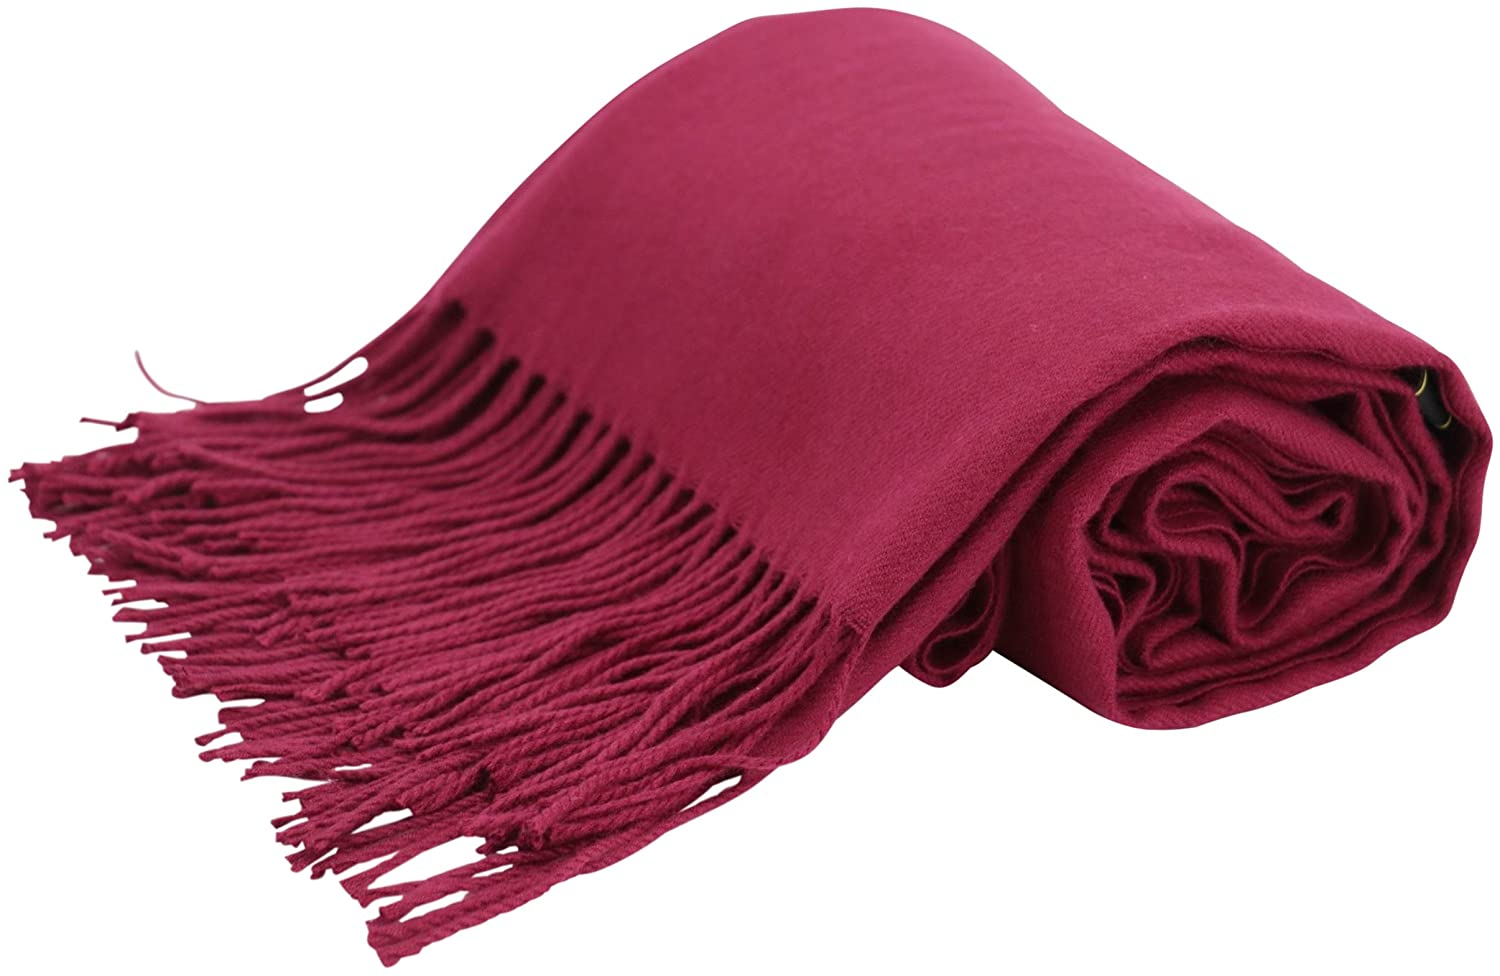 Thick Solid Color Design Cotton Blend Shawl Scarf Wrap Pashminas NEW CJ Apparel